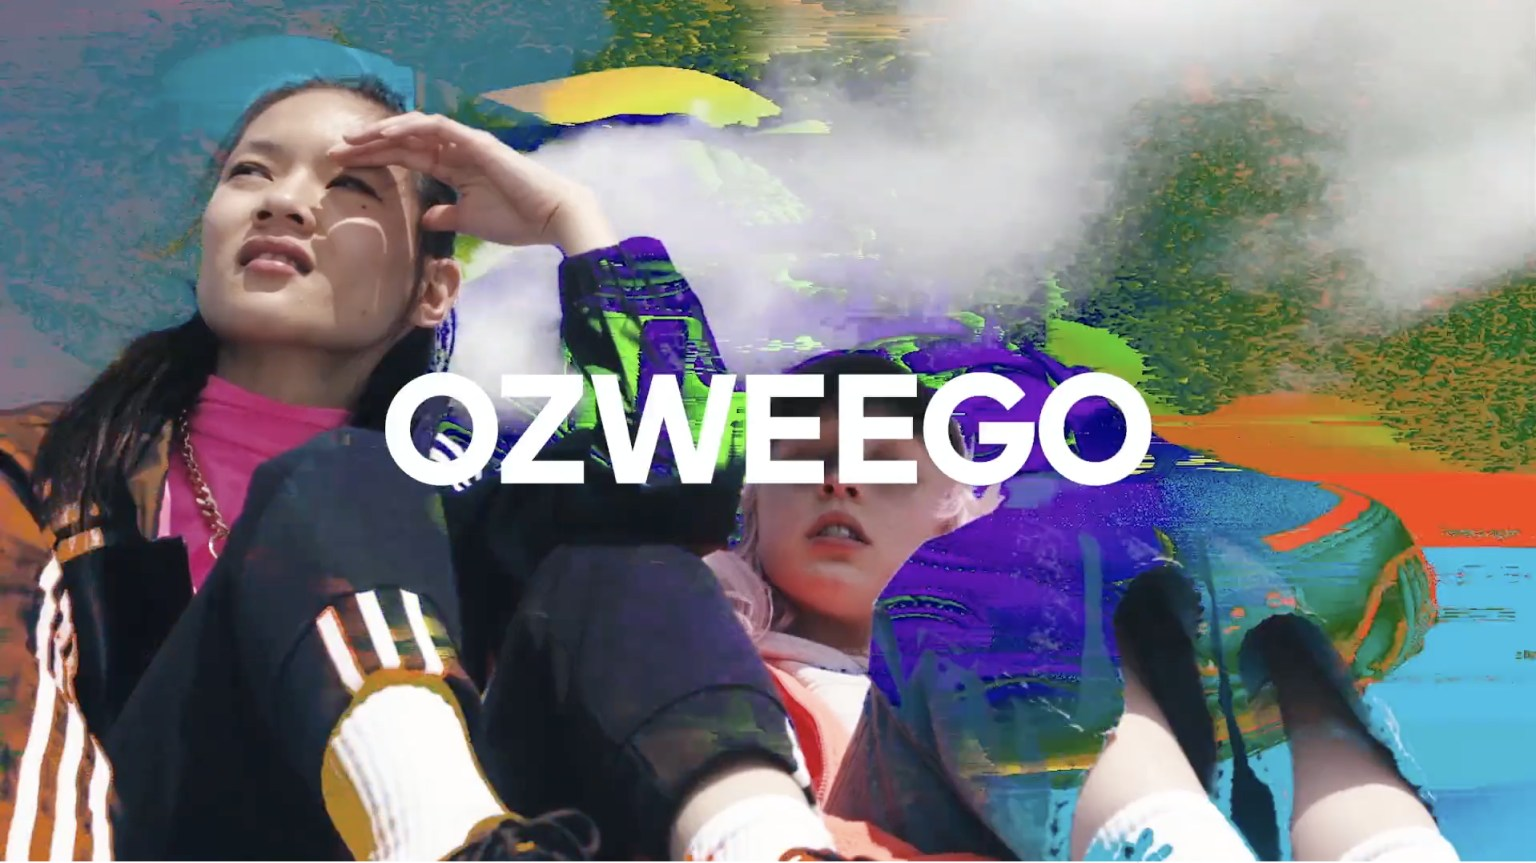 OZWEEGO - Powered by the Past - adidas Originals